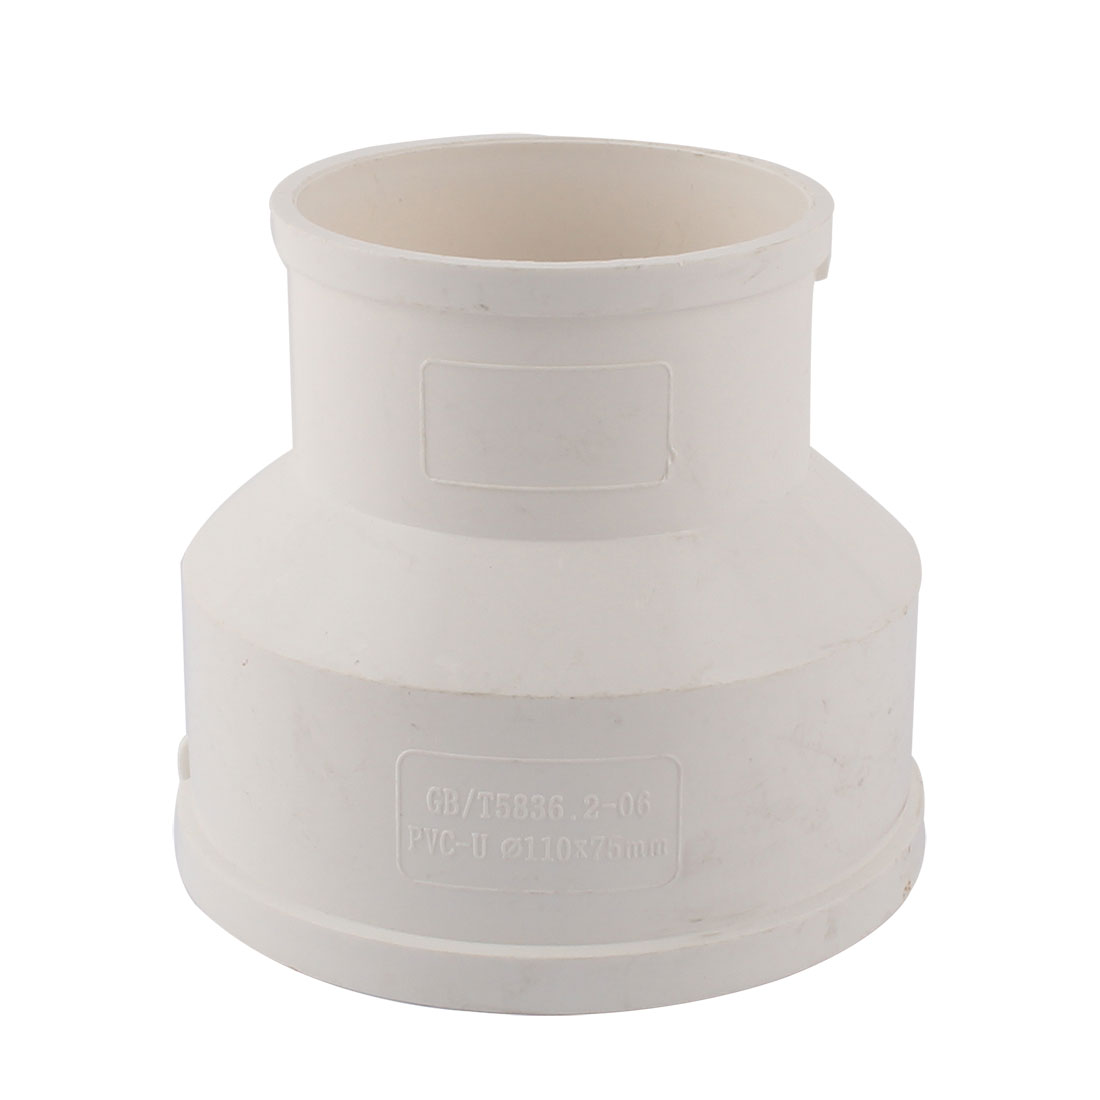 Industrial Home PVC Straight Design Water Drainage Pipe Drainpipe Tube Connector Fitting